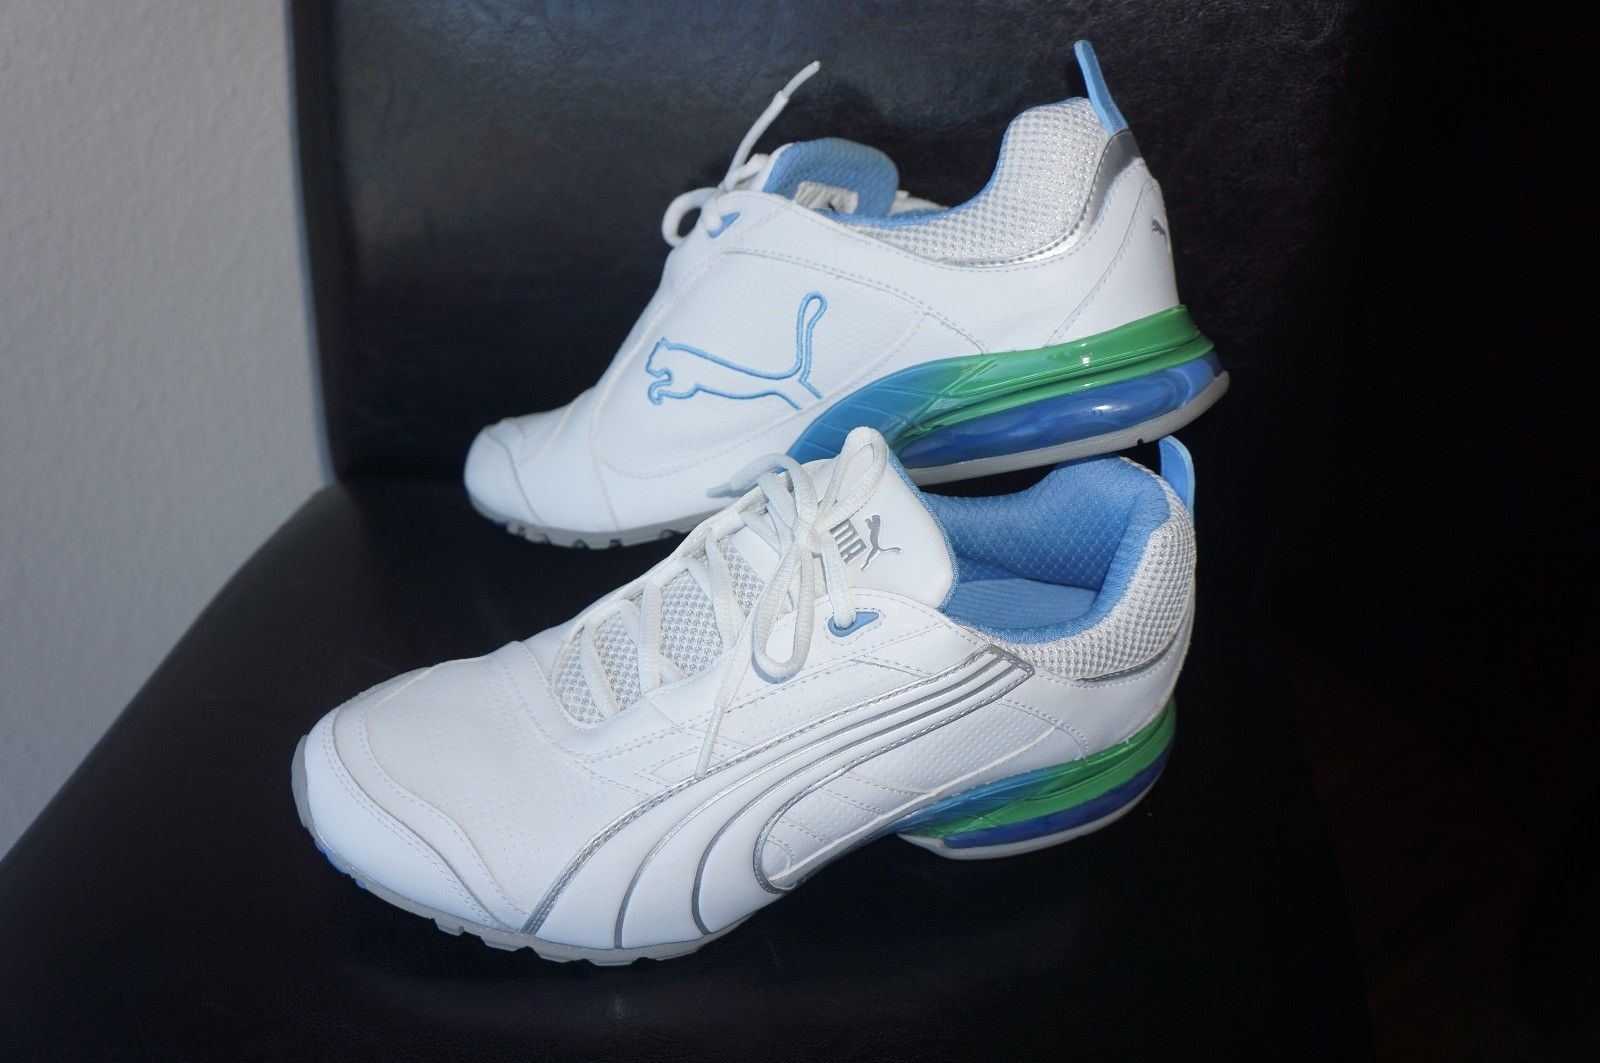 72db66f599a Puma Cell Inertia Fade White Blue Green and 50 similar items